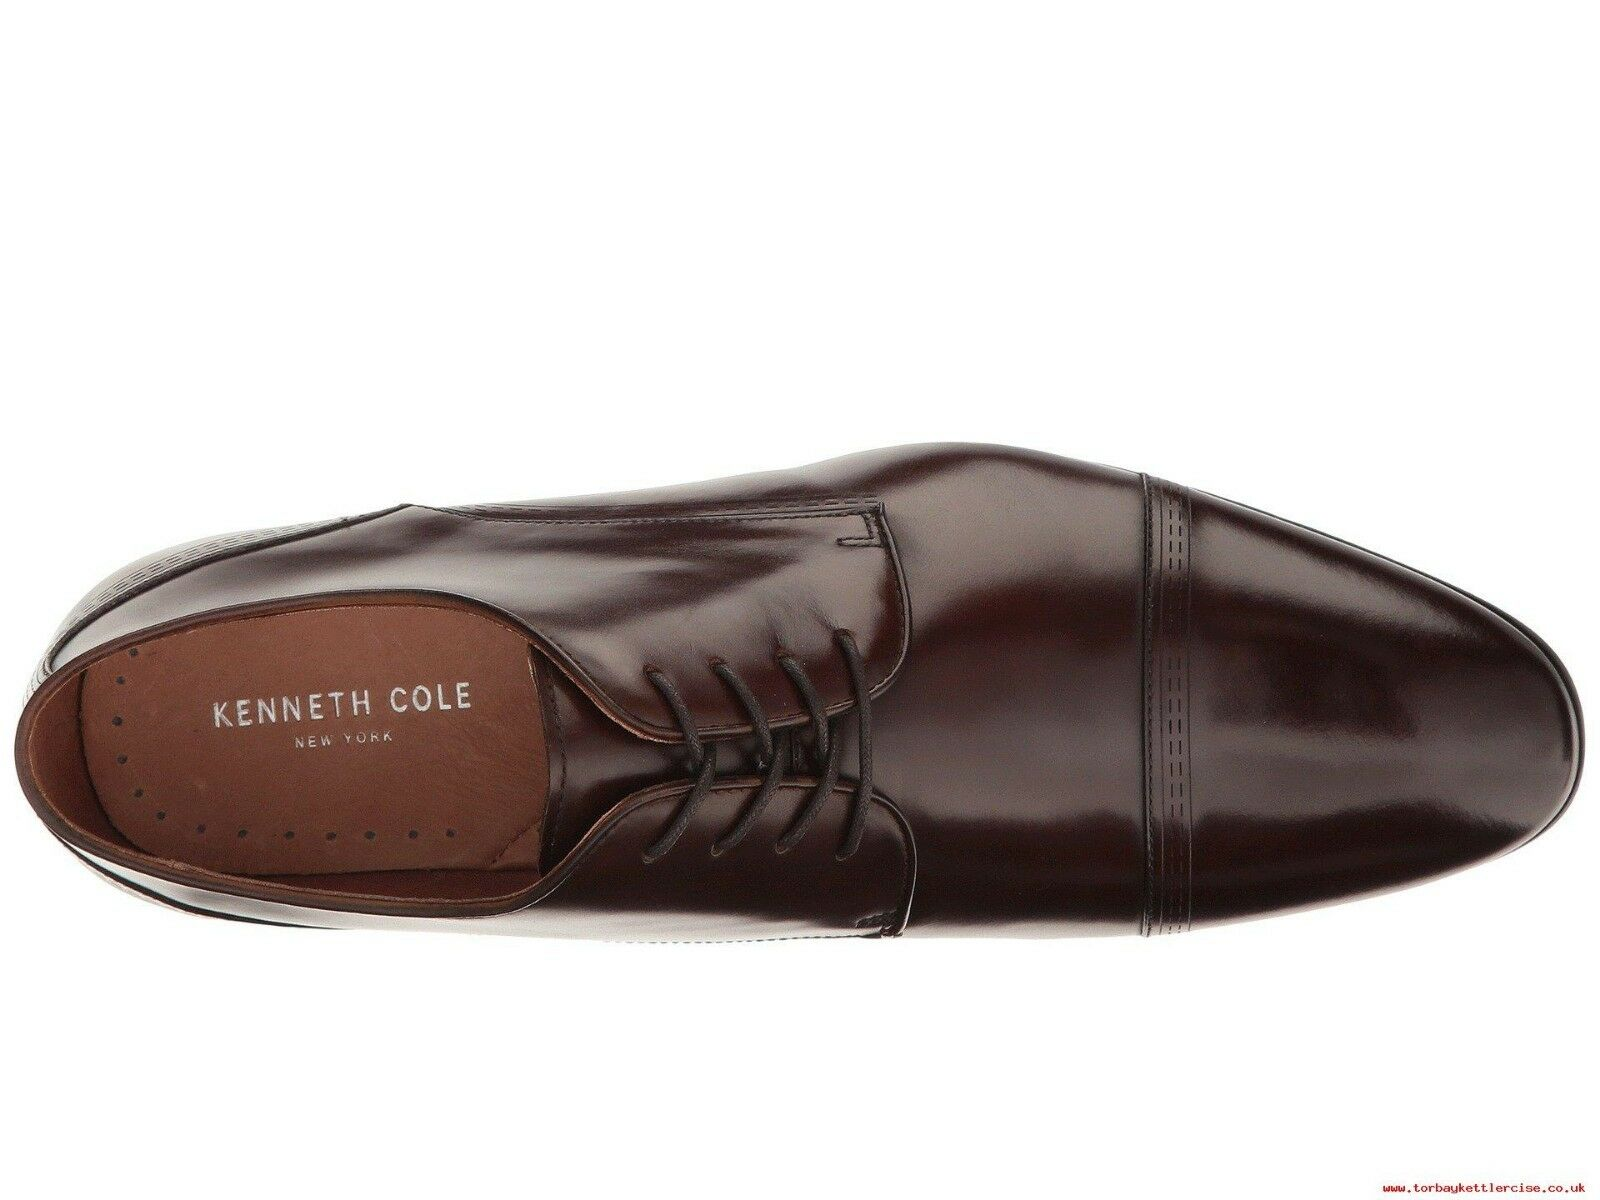 Kenneth Cole New New New York Uomo Mix-ed Bag Oxford, Marrone 10 M d55fd1